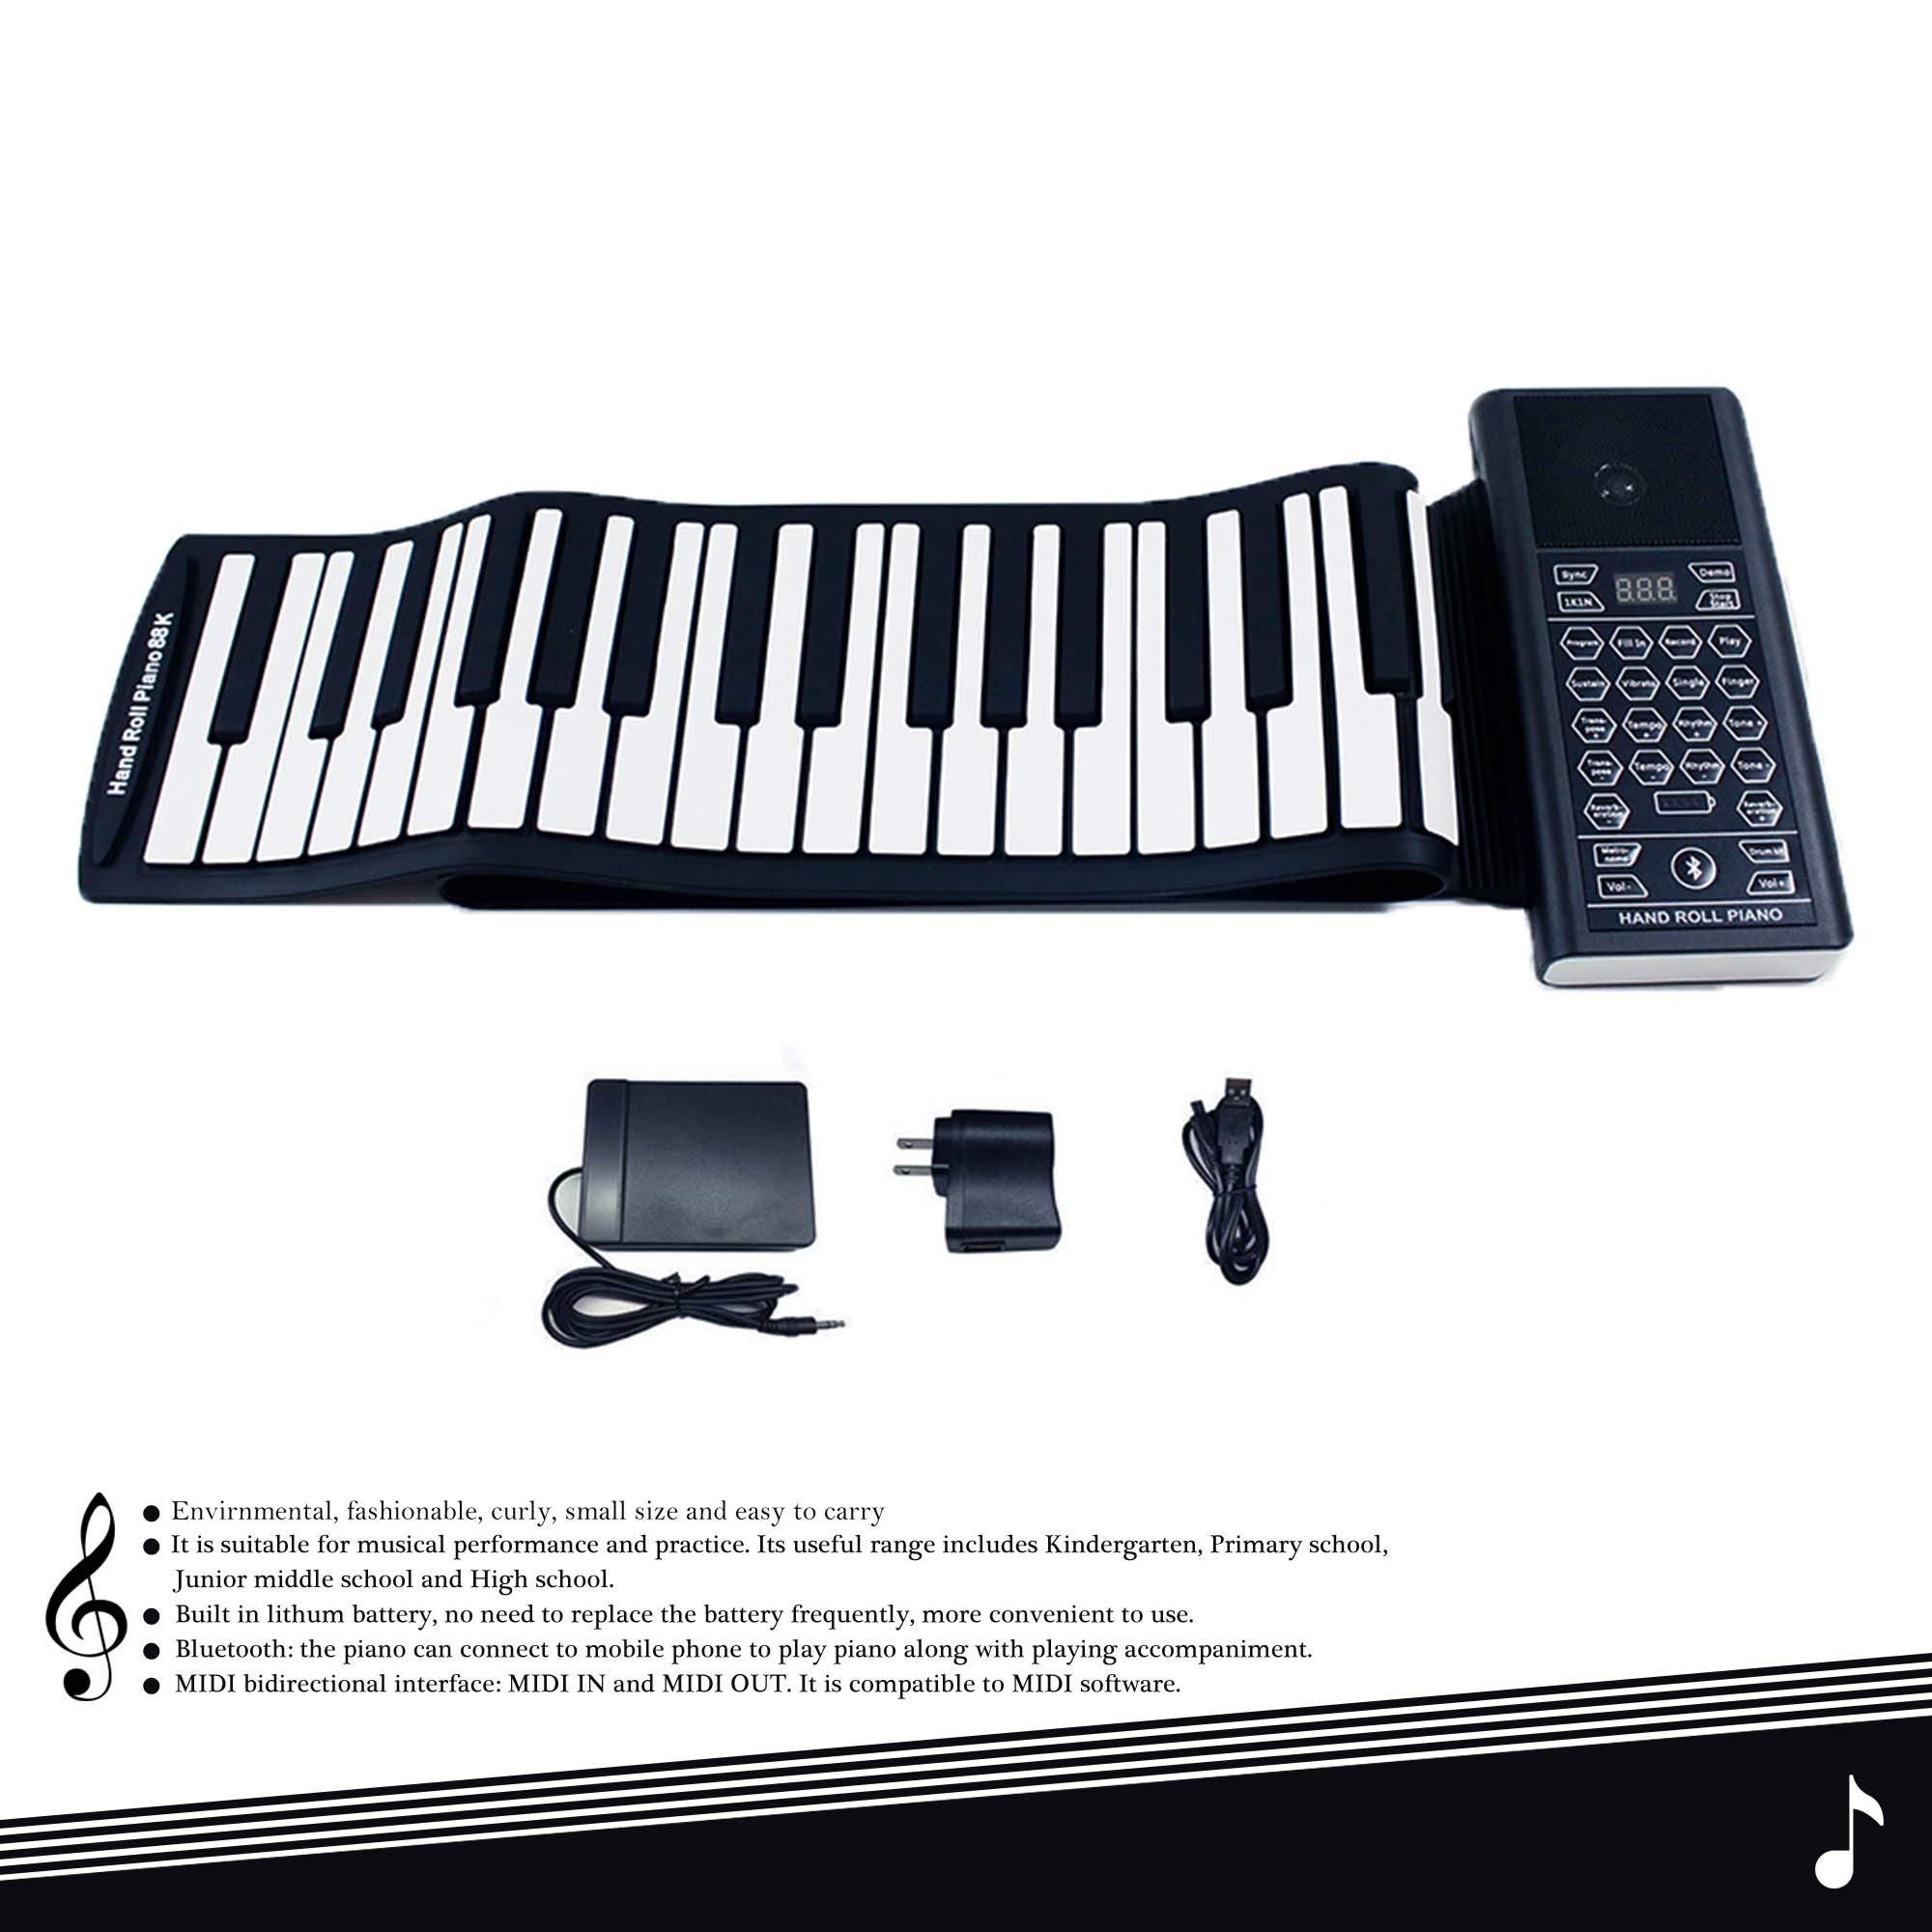 iLearnMusic Roll Up Piano Premium Grade Silicone |THICKENED KEYS | Upgraded Built-in Amplifying Speakers | Portable Piano Keyboard MIDI USB (88 Keys) by Kiker Music (Image #8)